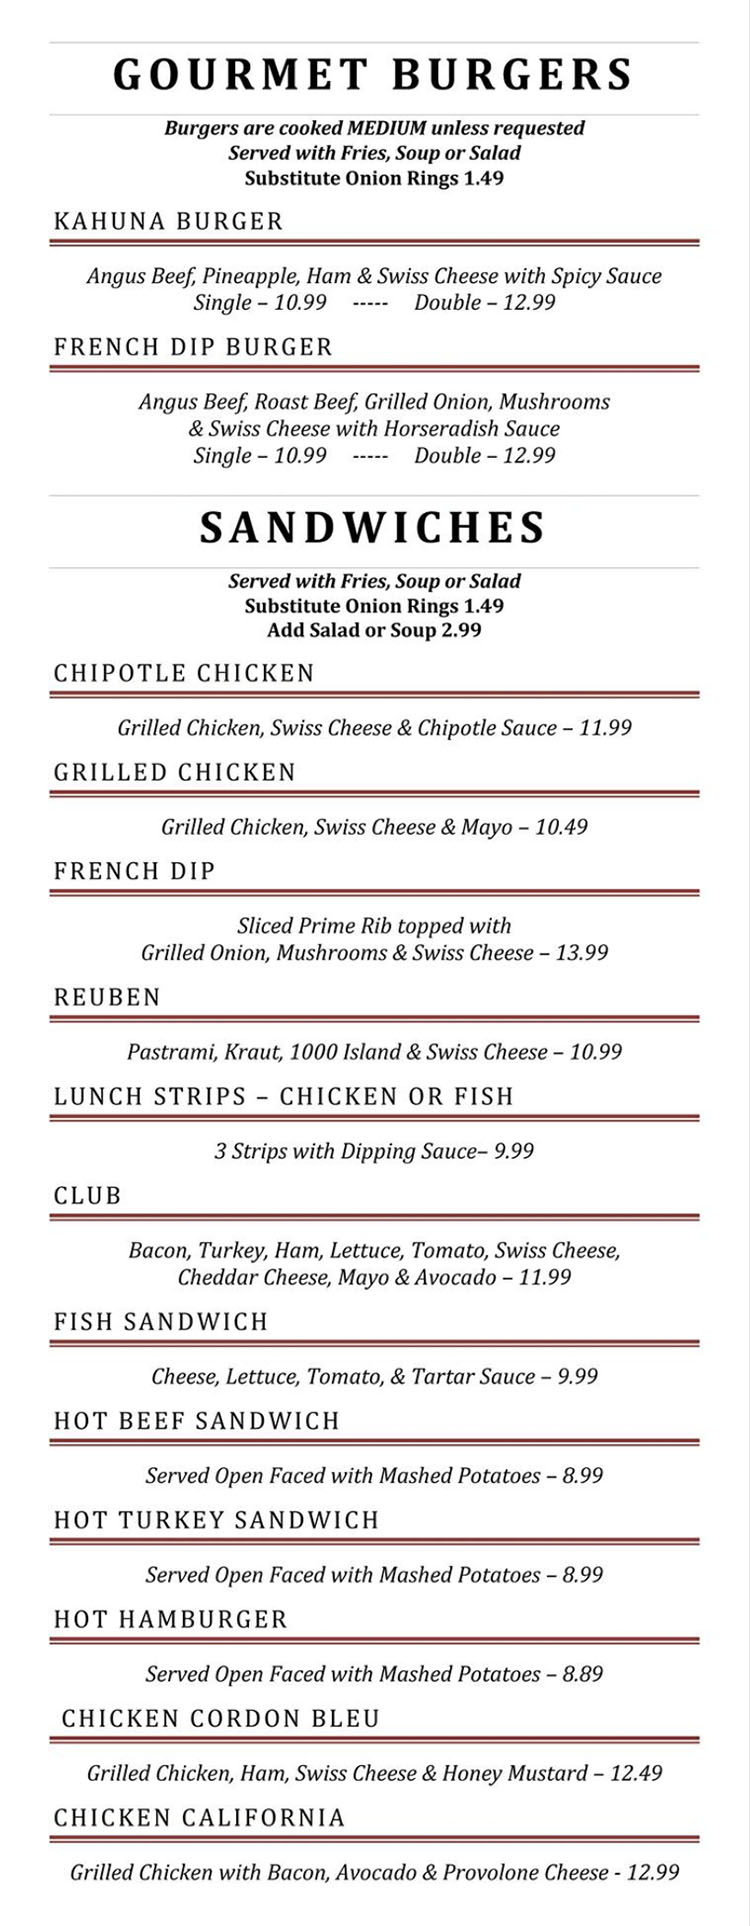 Blue Jay Cafe menu - more burgers, sandwiches